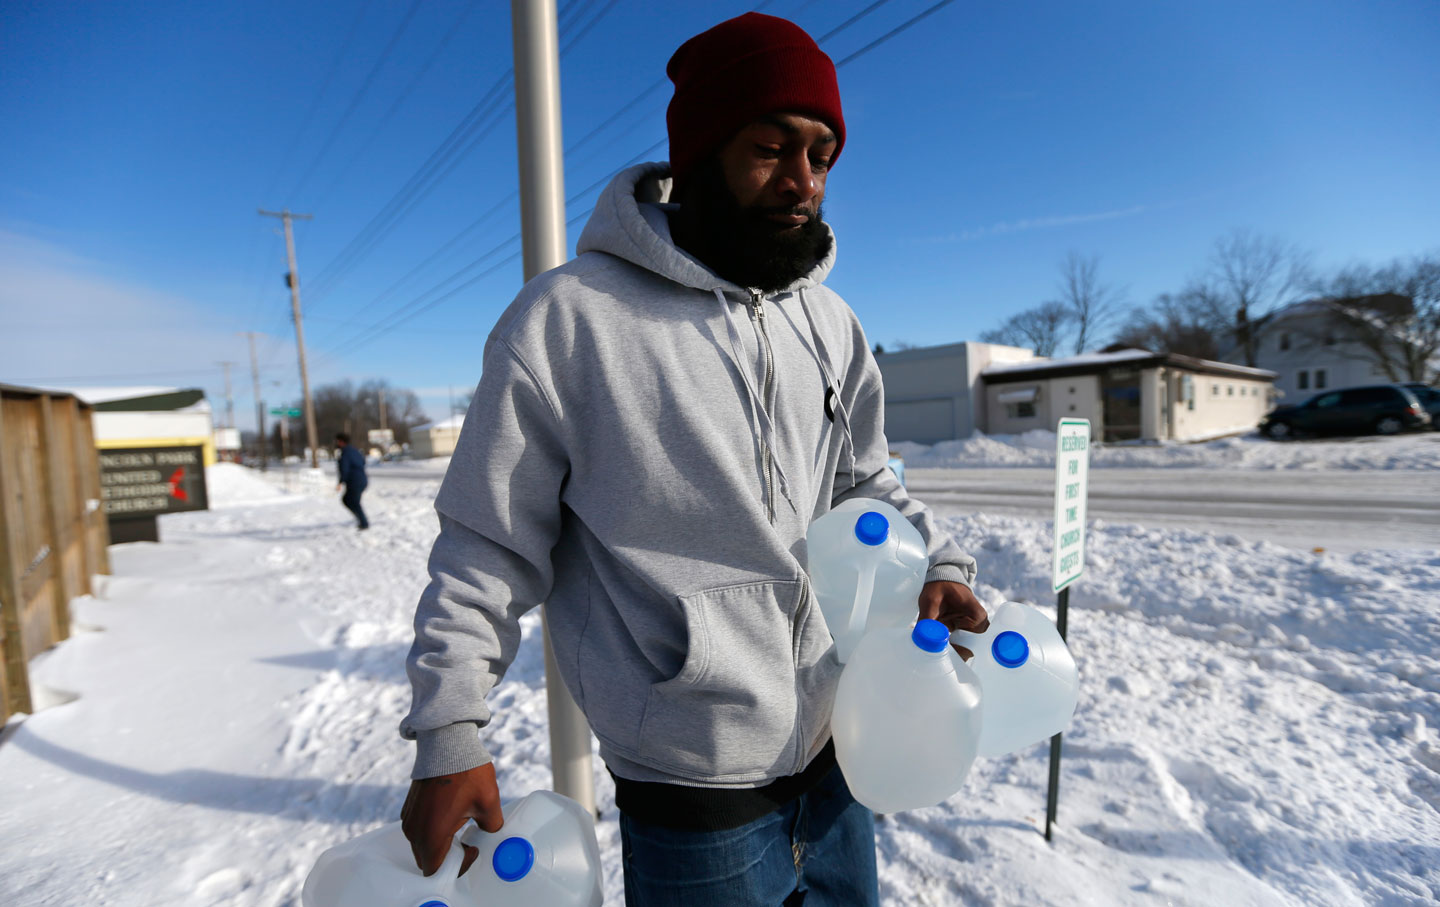 Flint Lead Poisoning And Promise Of >> Flint Is Finally Moving To Help Kids Recover From Lead Poisoning S